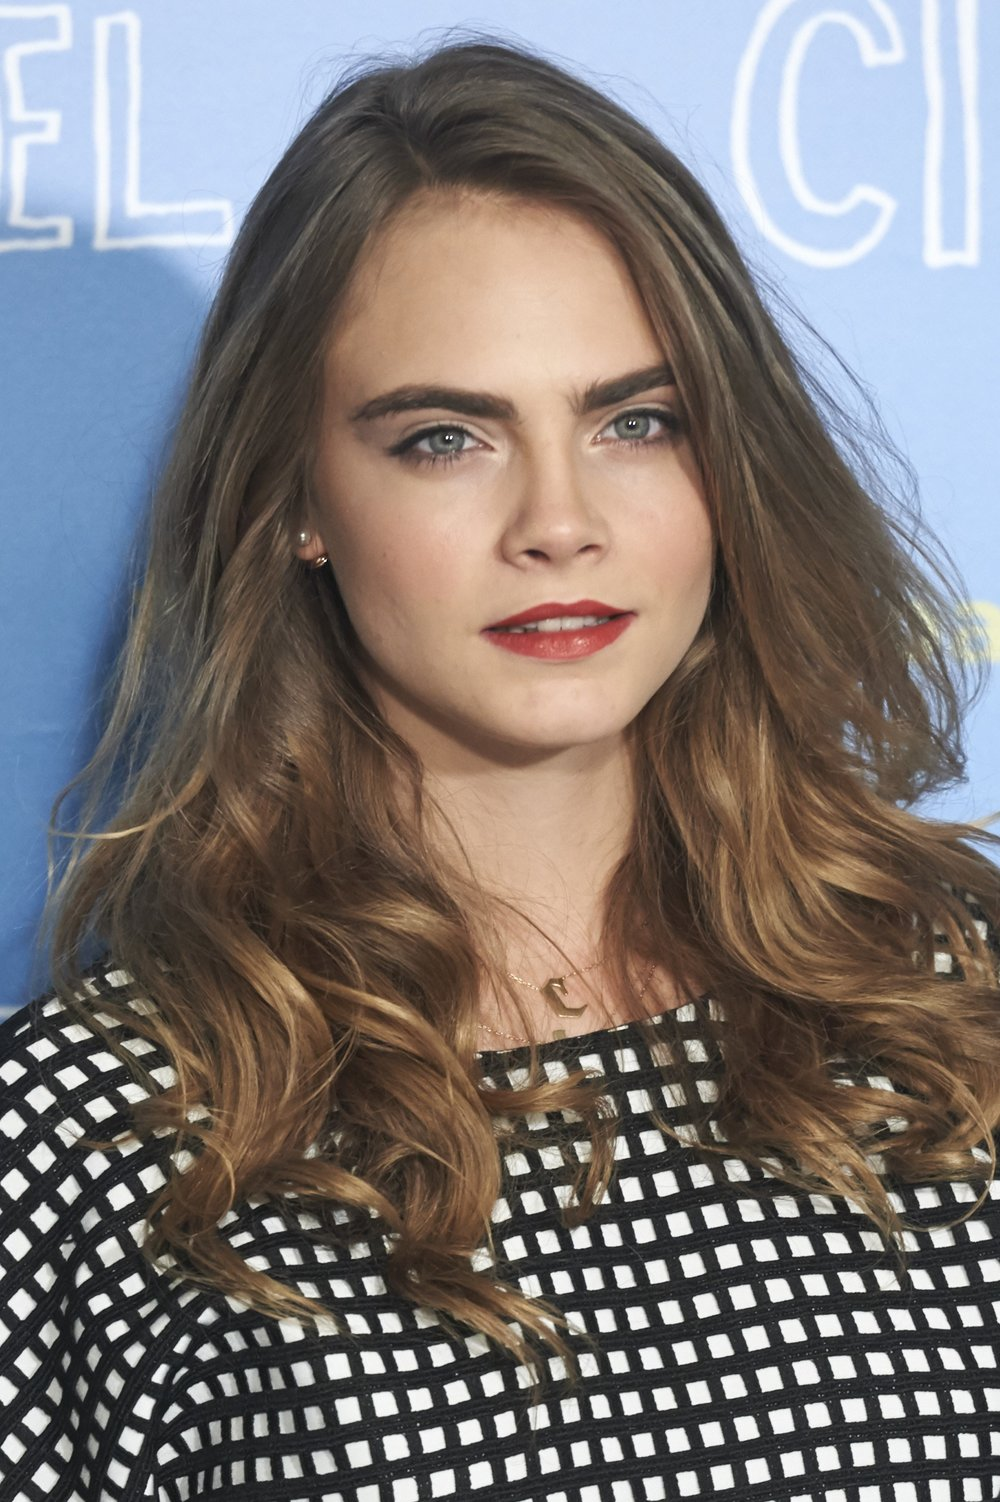 cara-d-beauty-evo-update-08.jpg